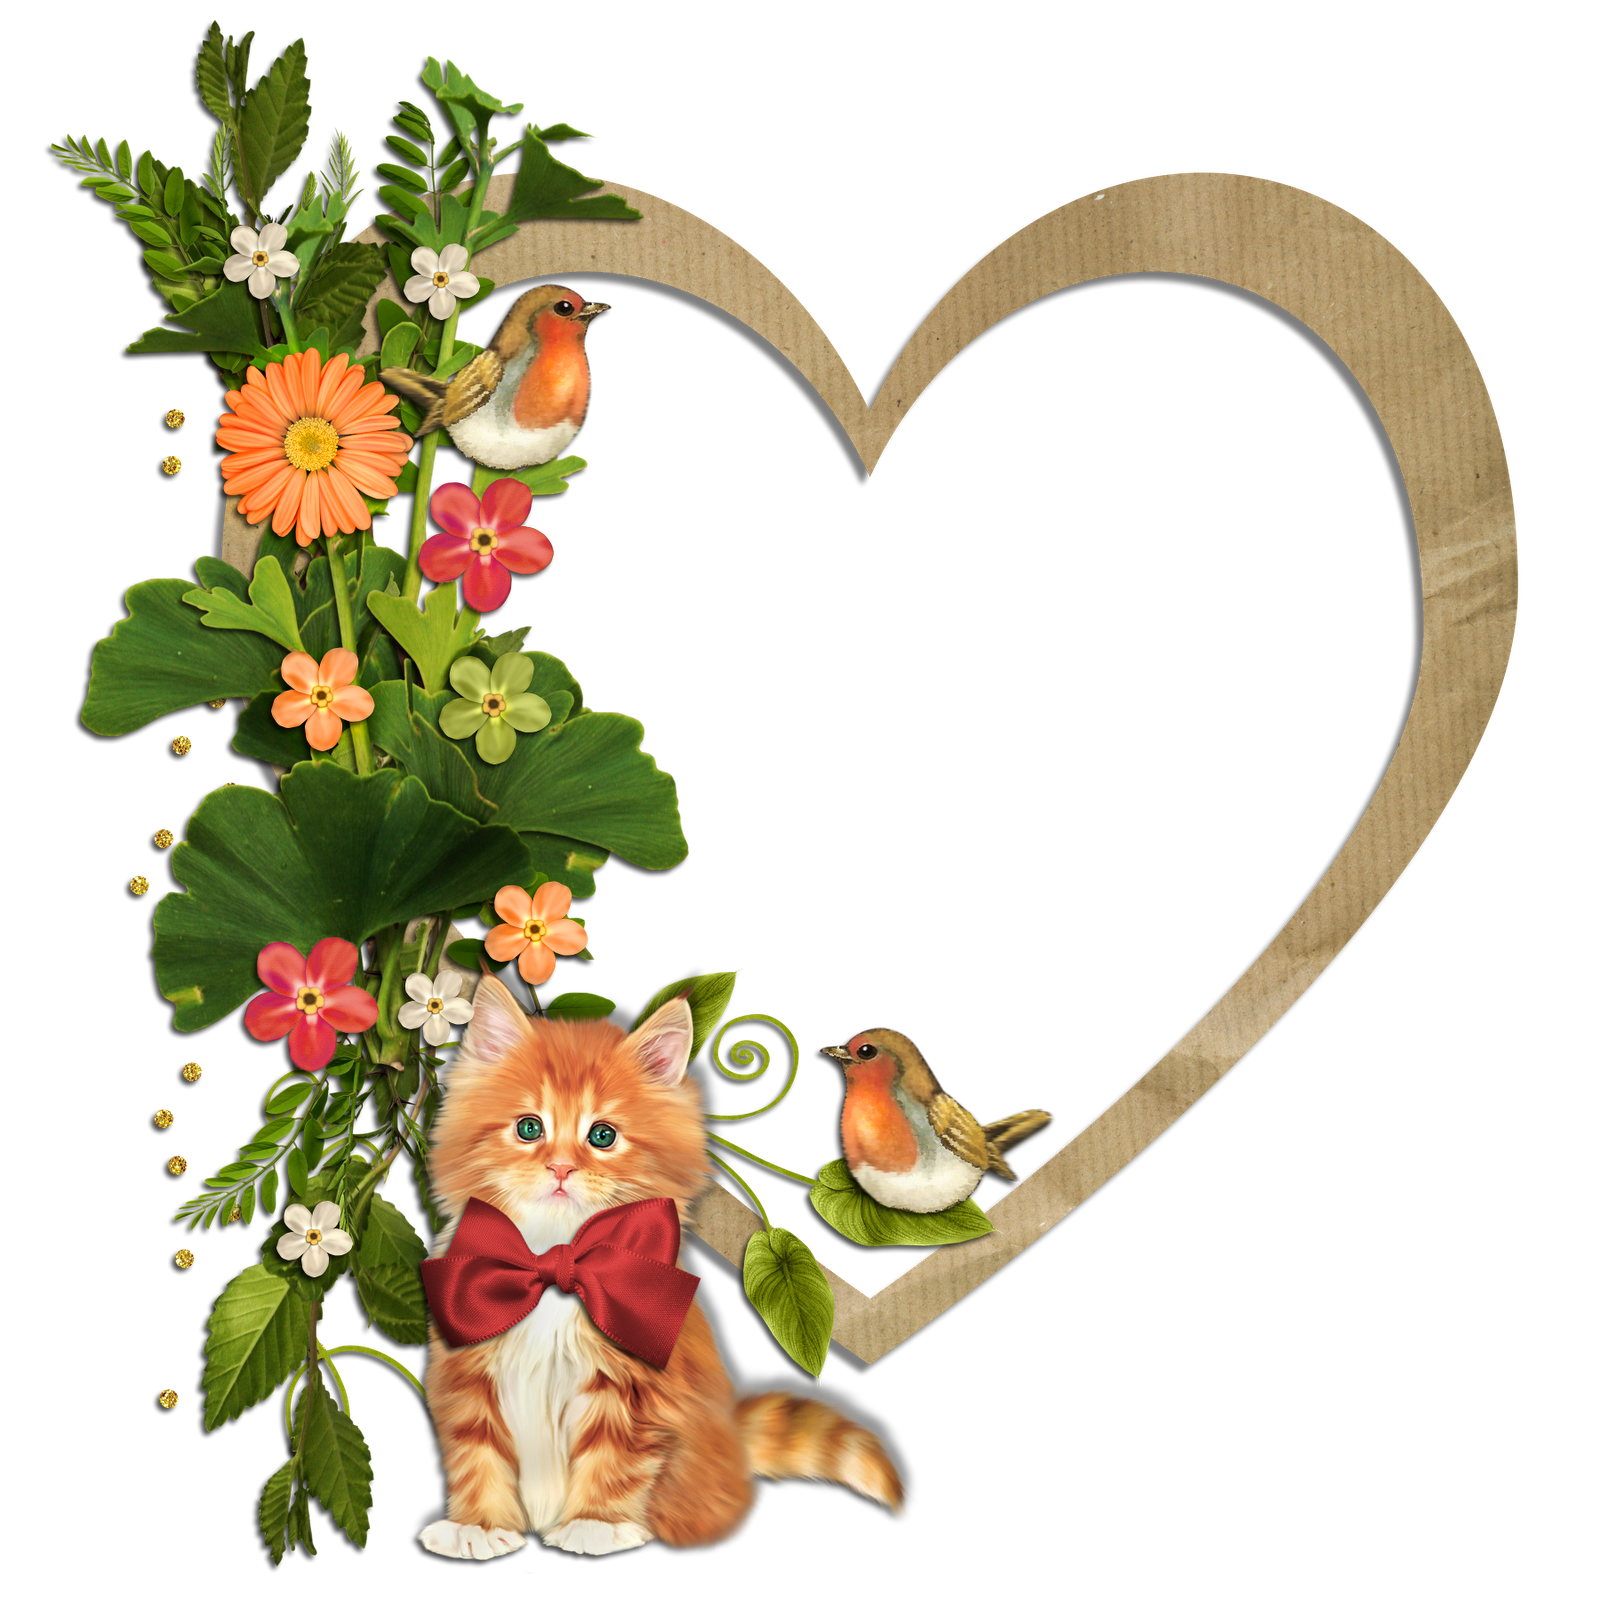 Bird and flower clipart png download Kitty Birds and Flowers Heart Transparent Frame | Gallery ... png download